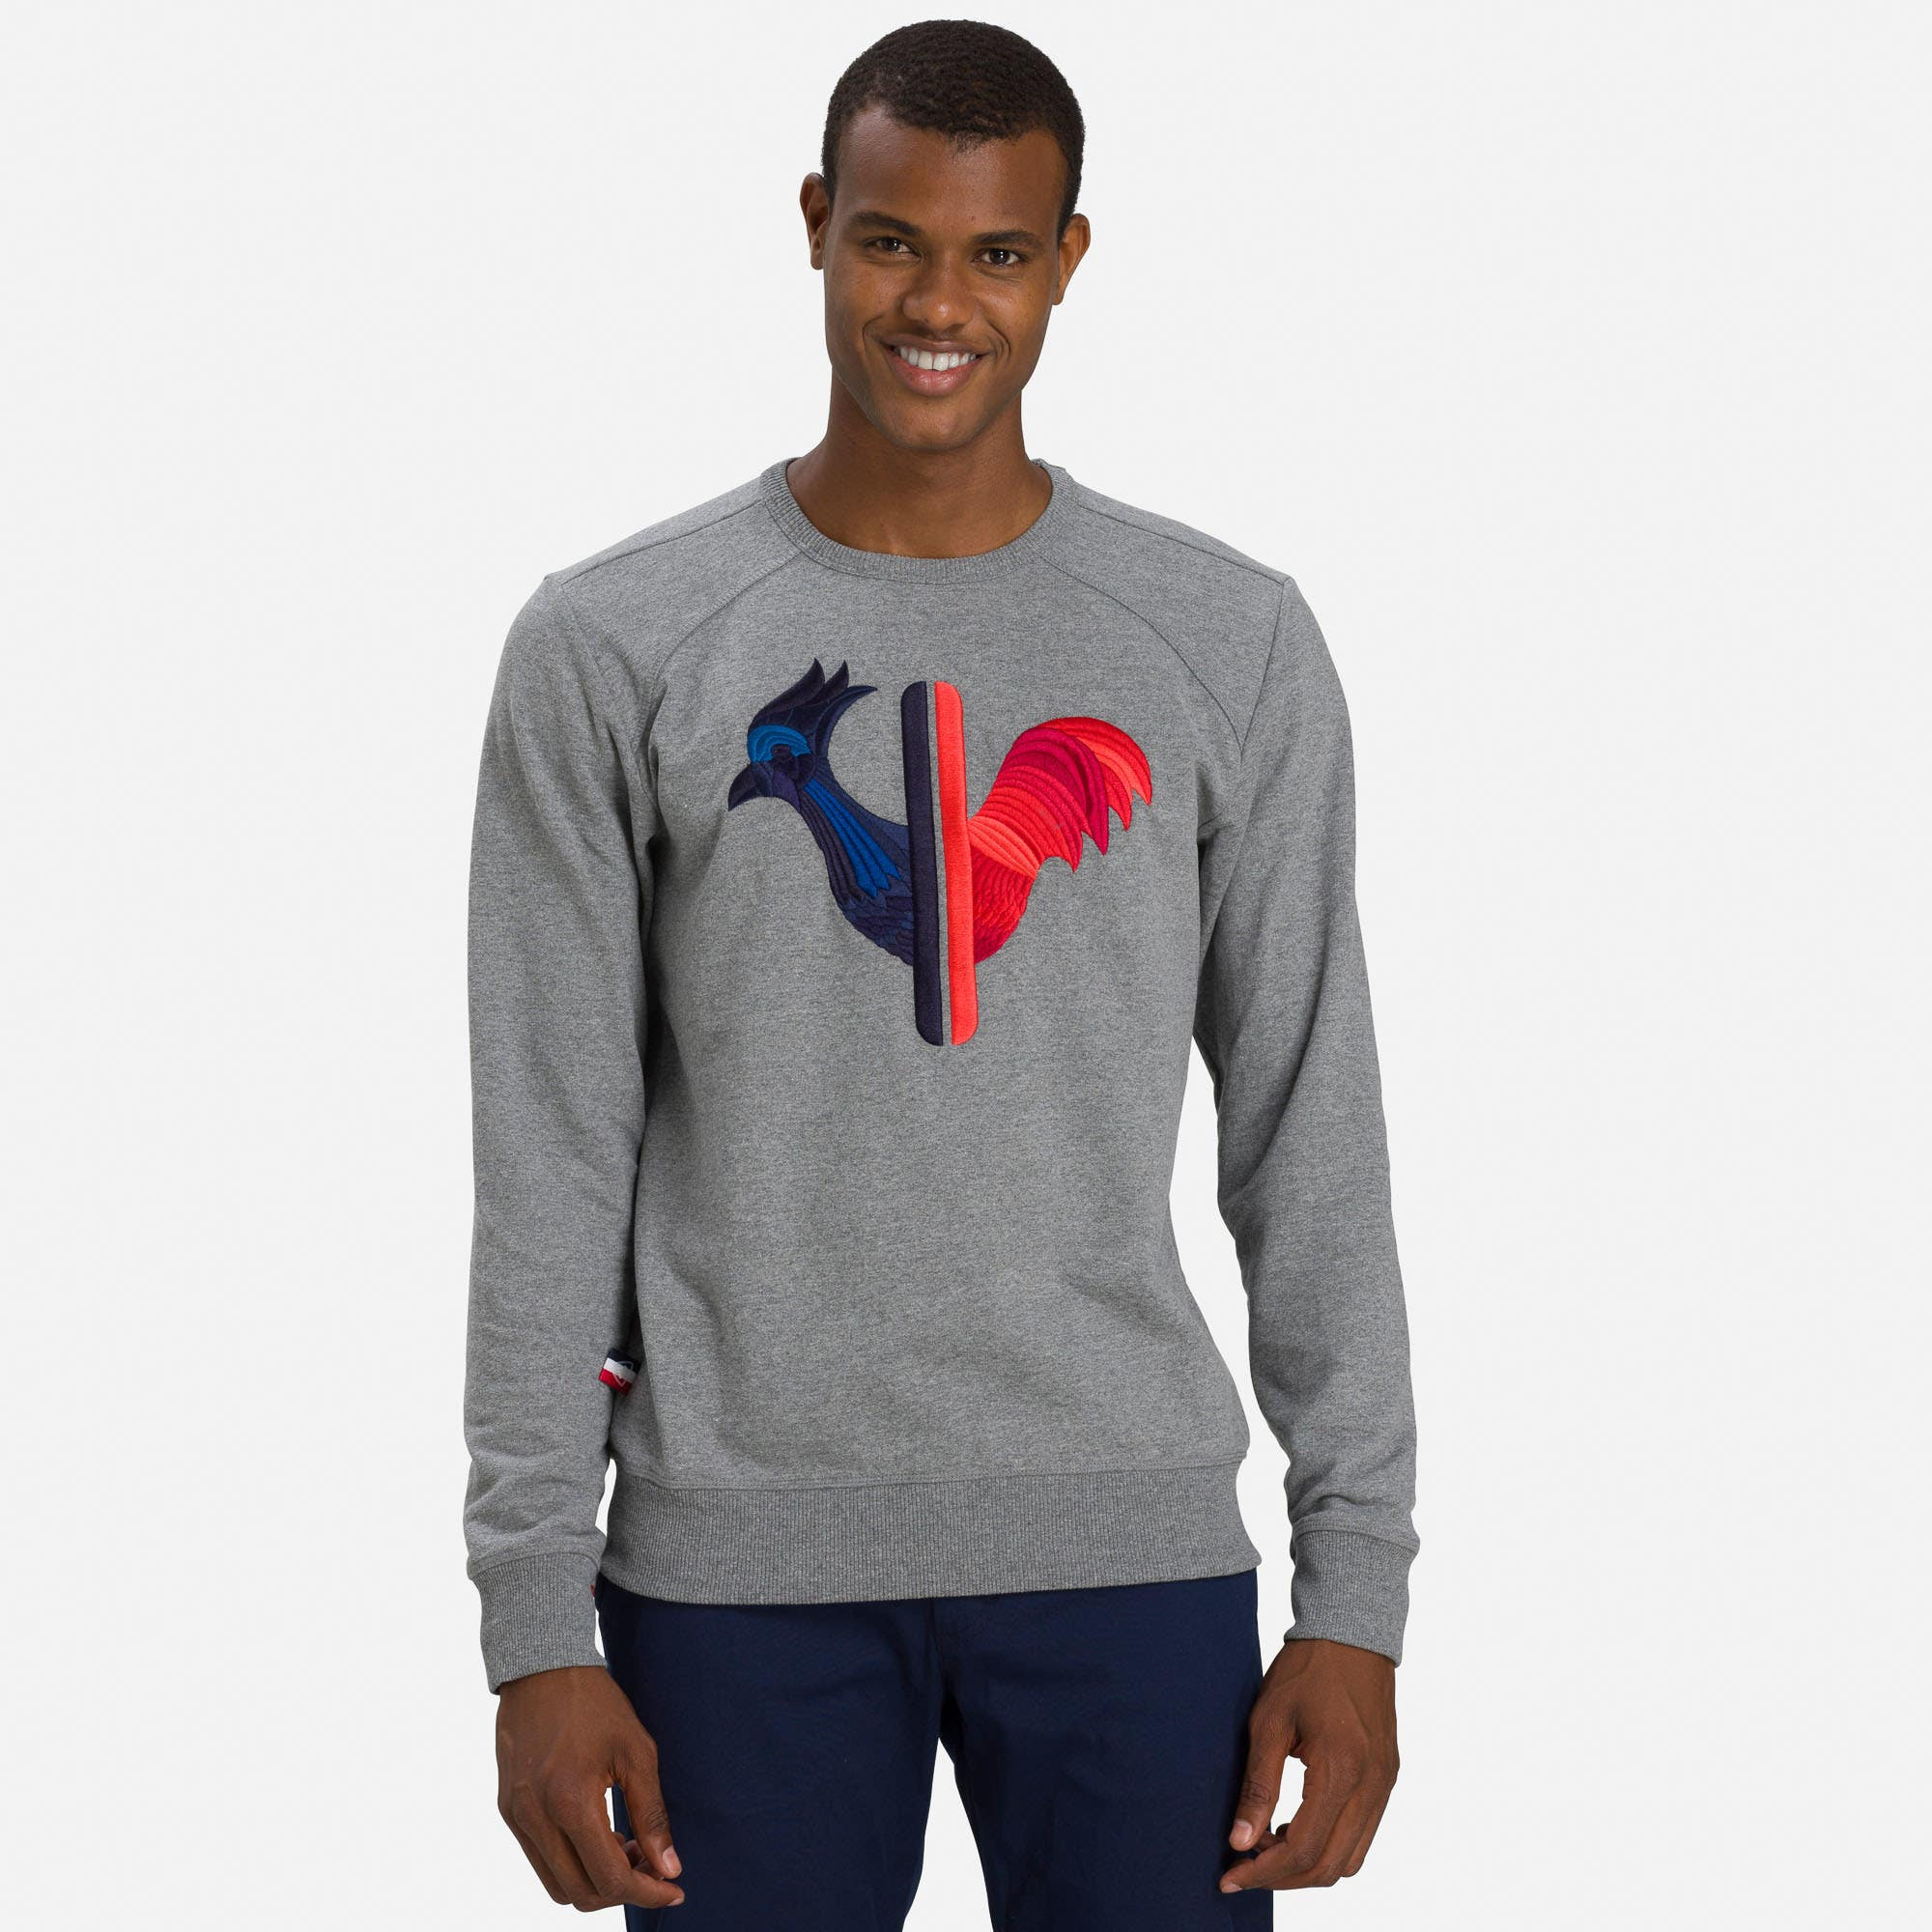 Image of Men's Embroidered Rooster Sweatshirt